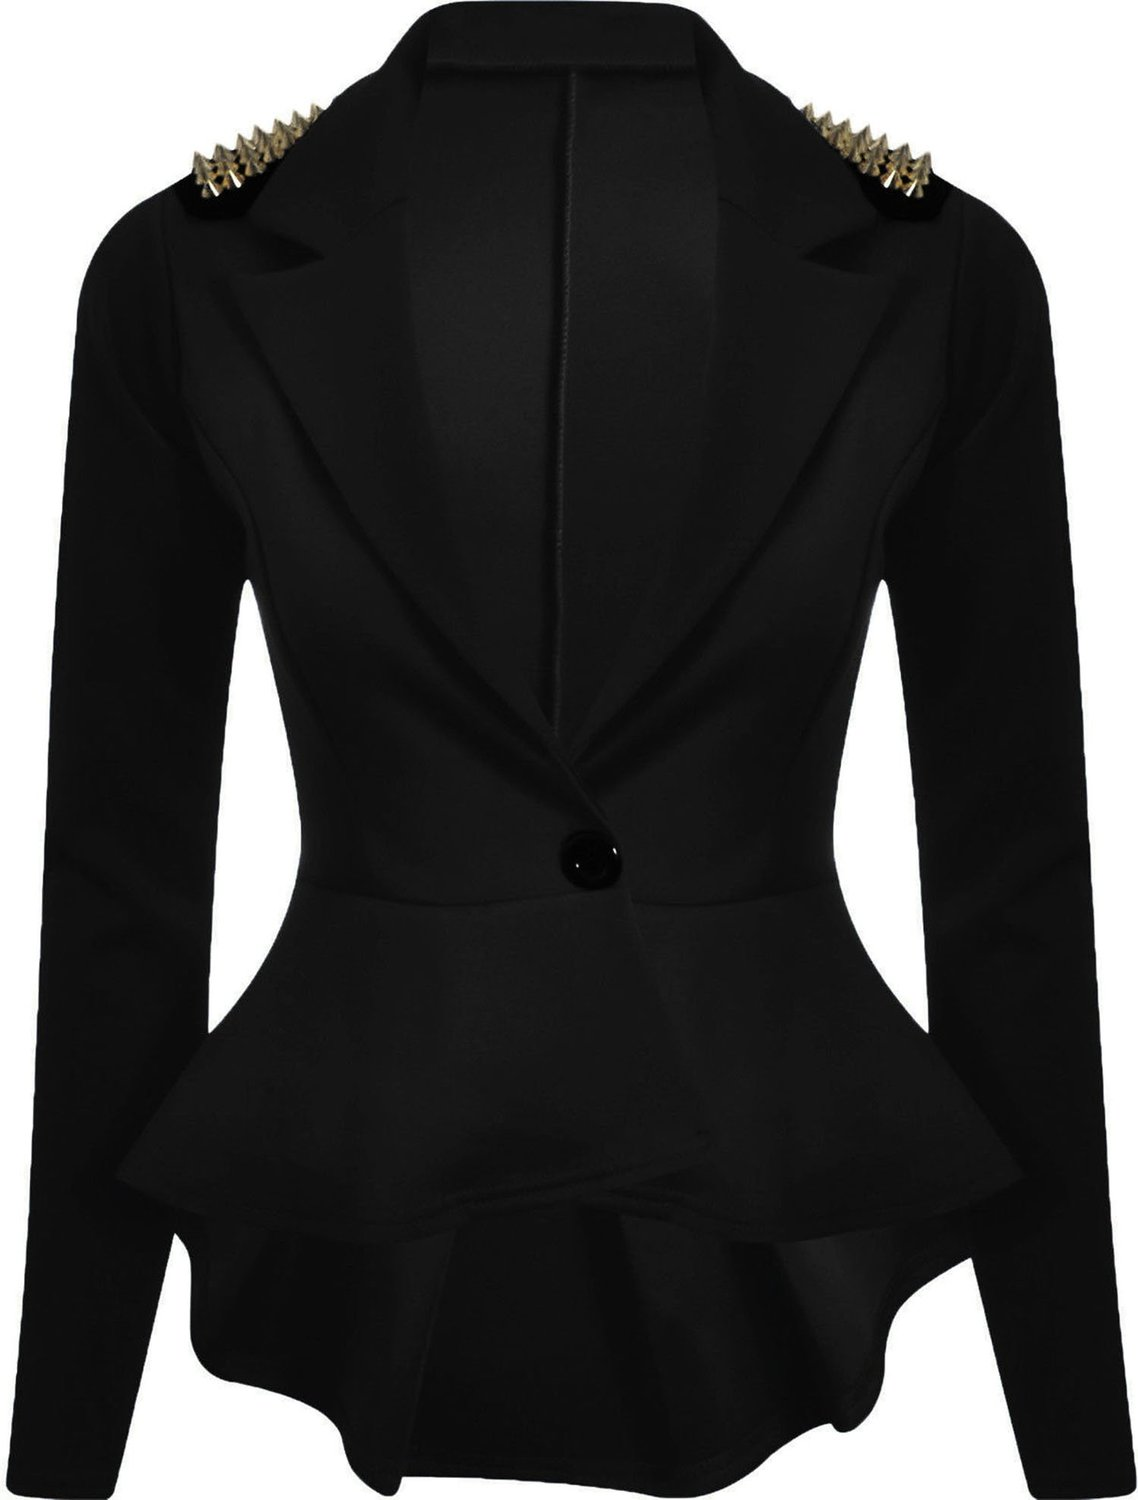 Forever Womens Long Sleeves Plain Spikes Shoulder Peplum Button Blazer at Amazon Women's Clothing store